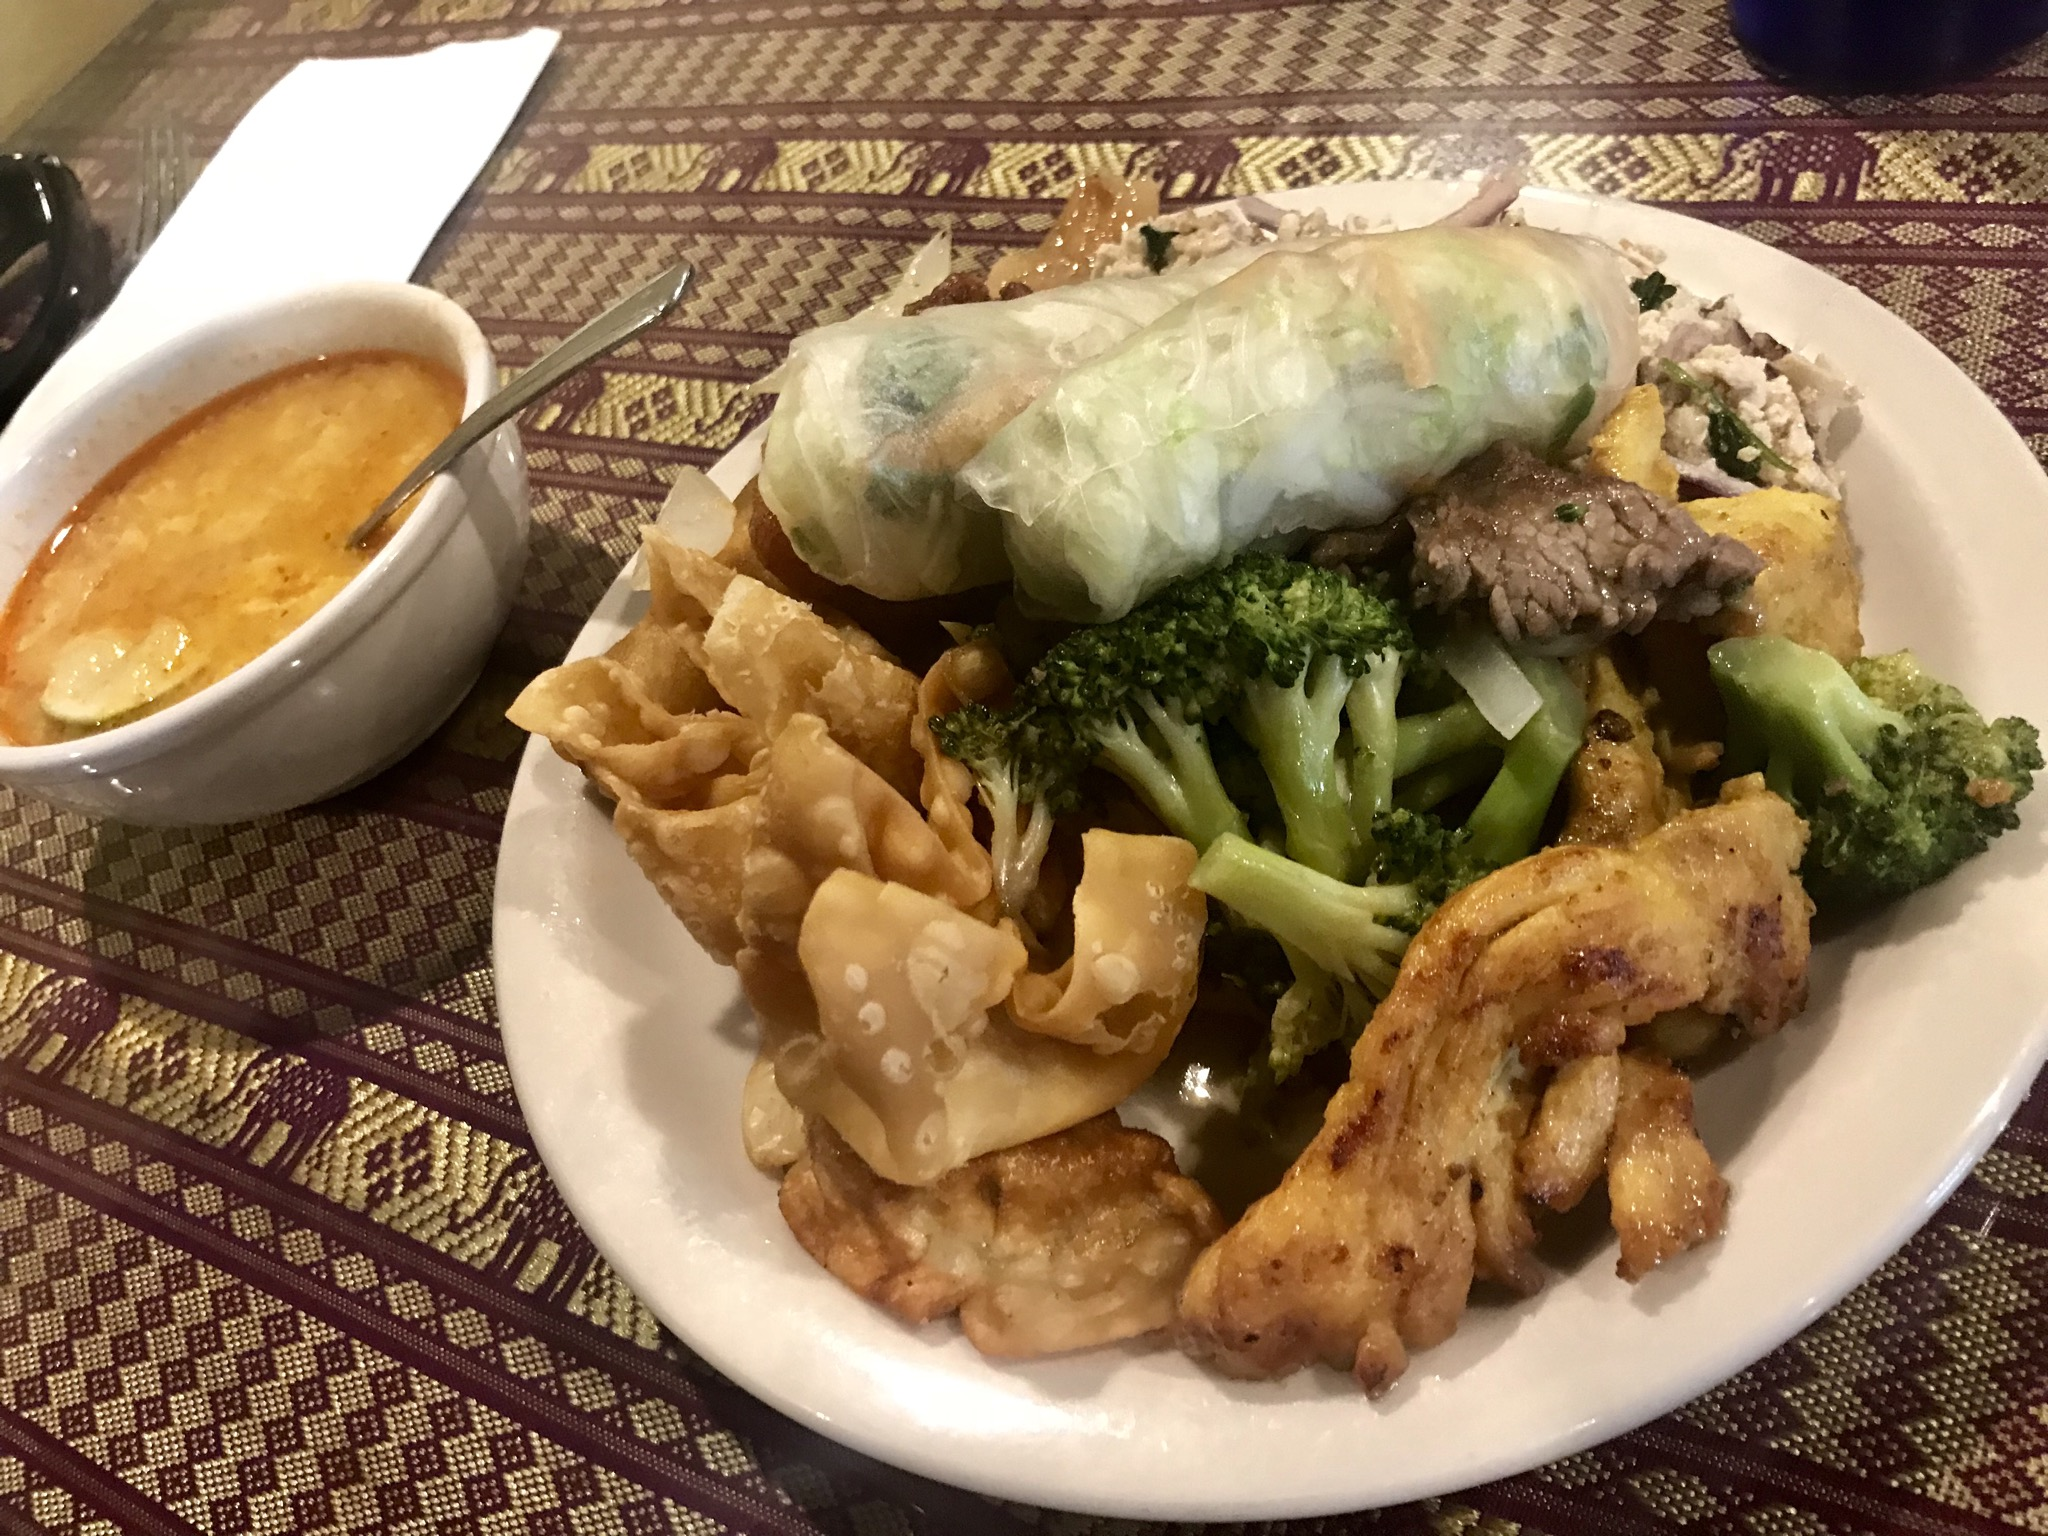 Lunch at Bangkok Thailand in Kennewick - September 6 2018